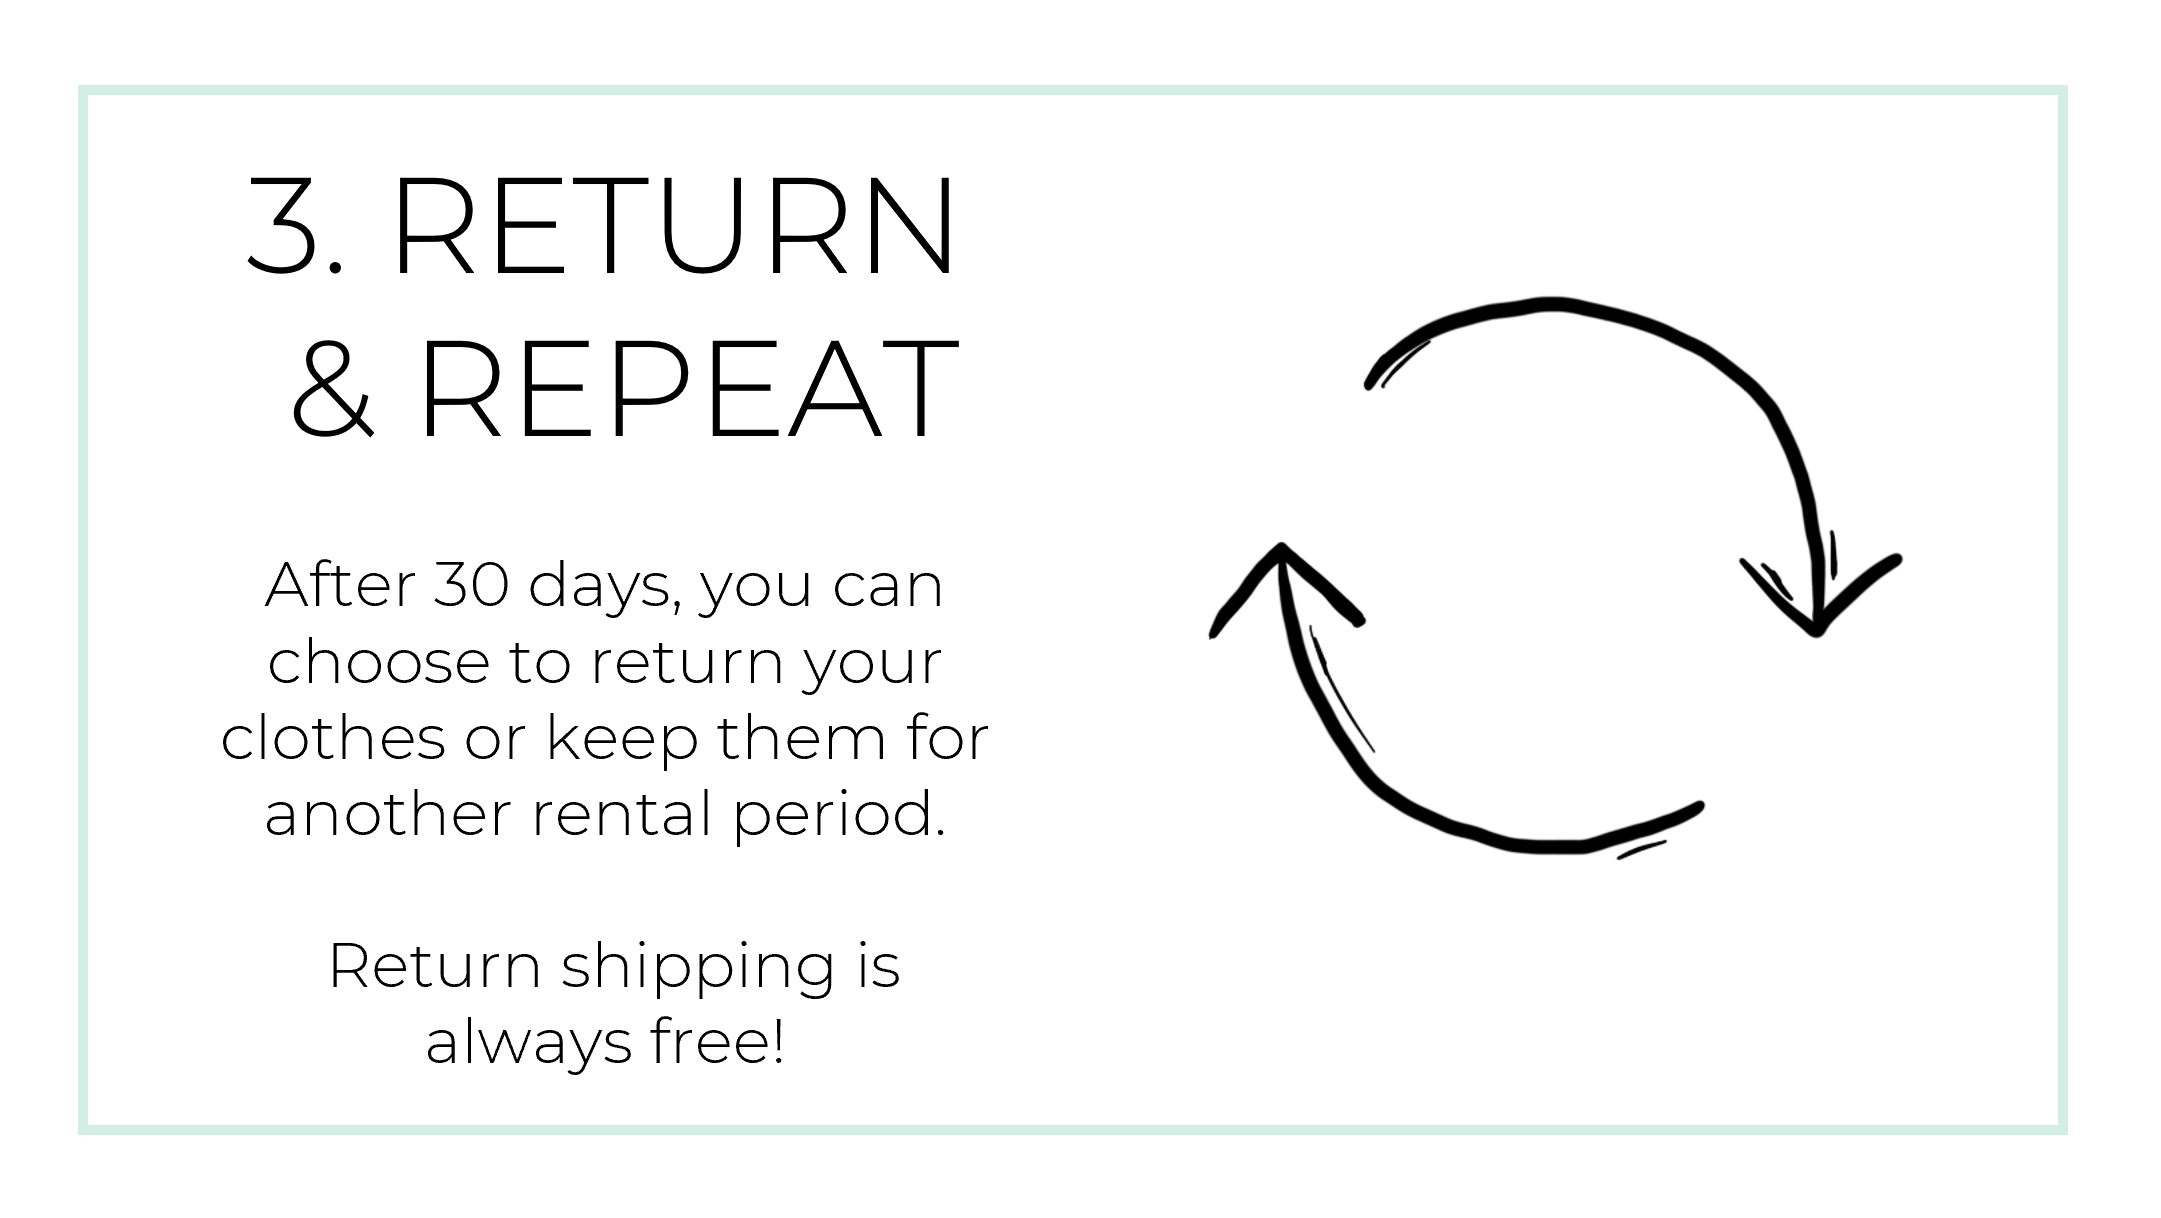 After 30 days, you can choose to return your clothes or keep them for another rental period.